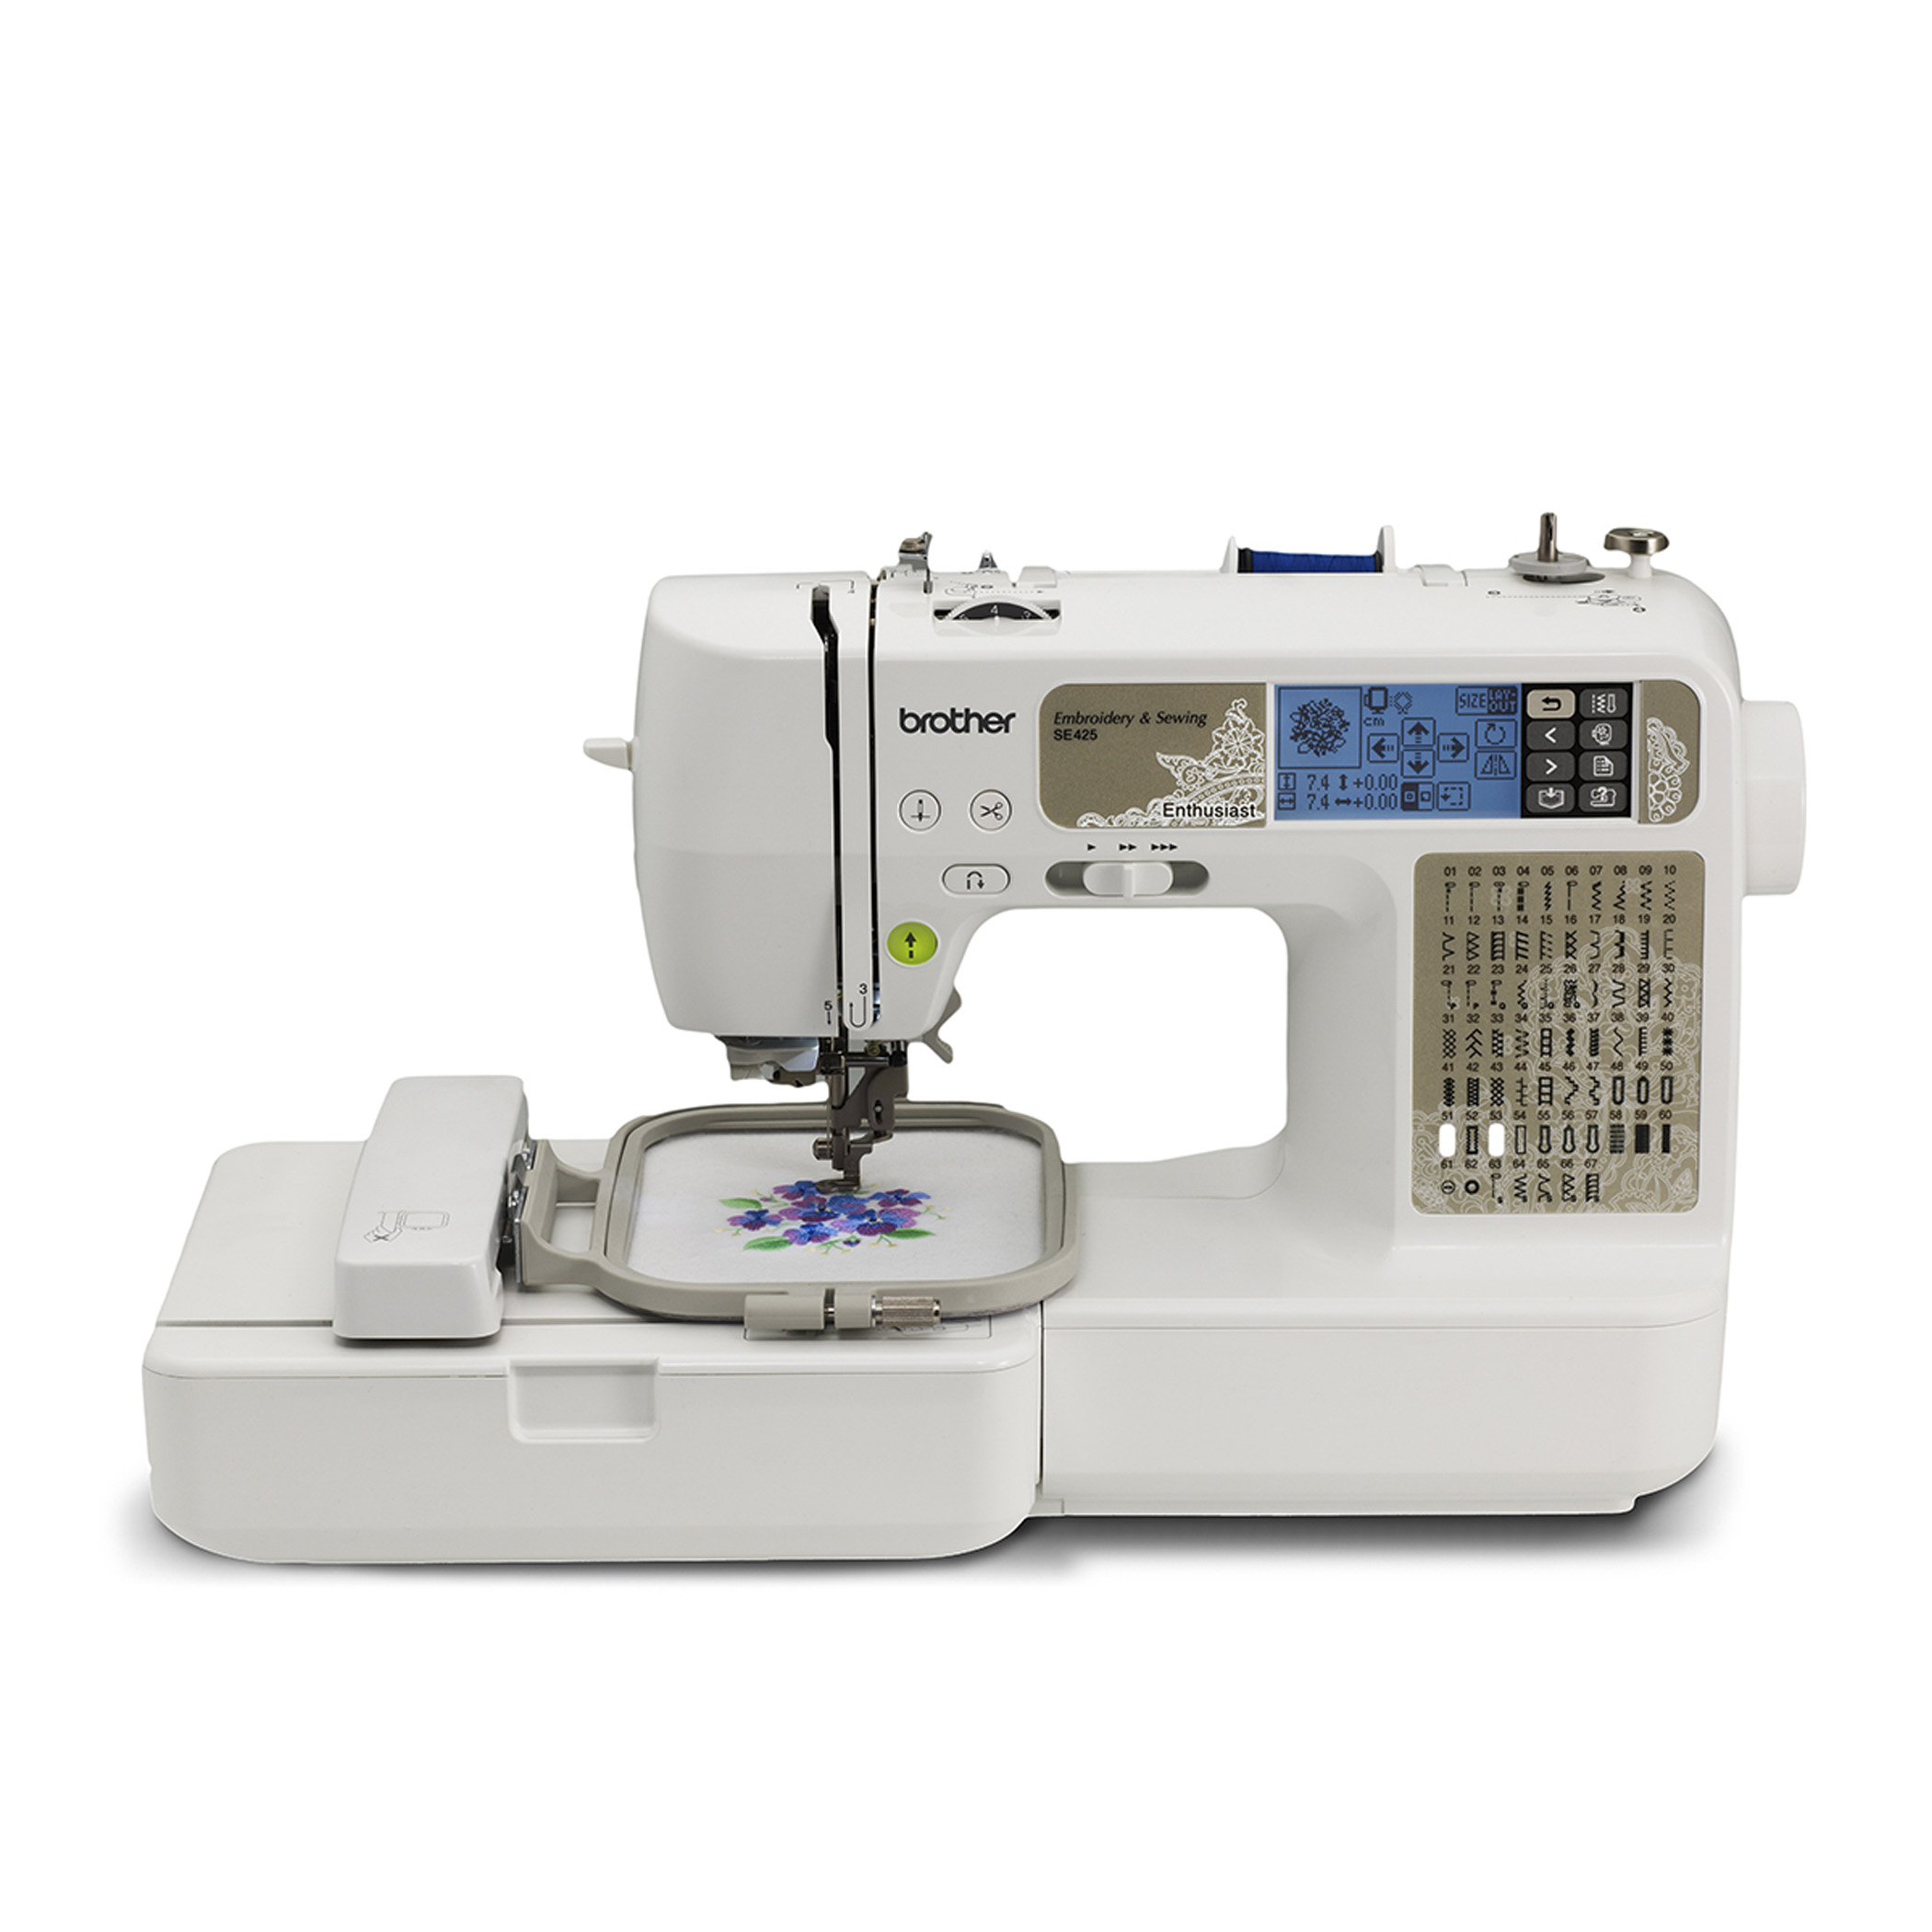 Brother Sewing And Embroidery Machine Se425 Kenmore Model 12 Threading Diagram